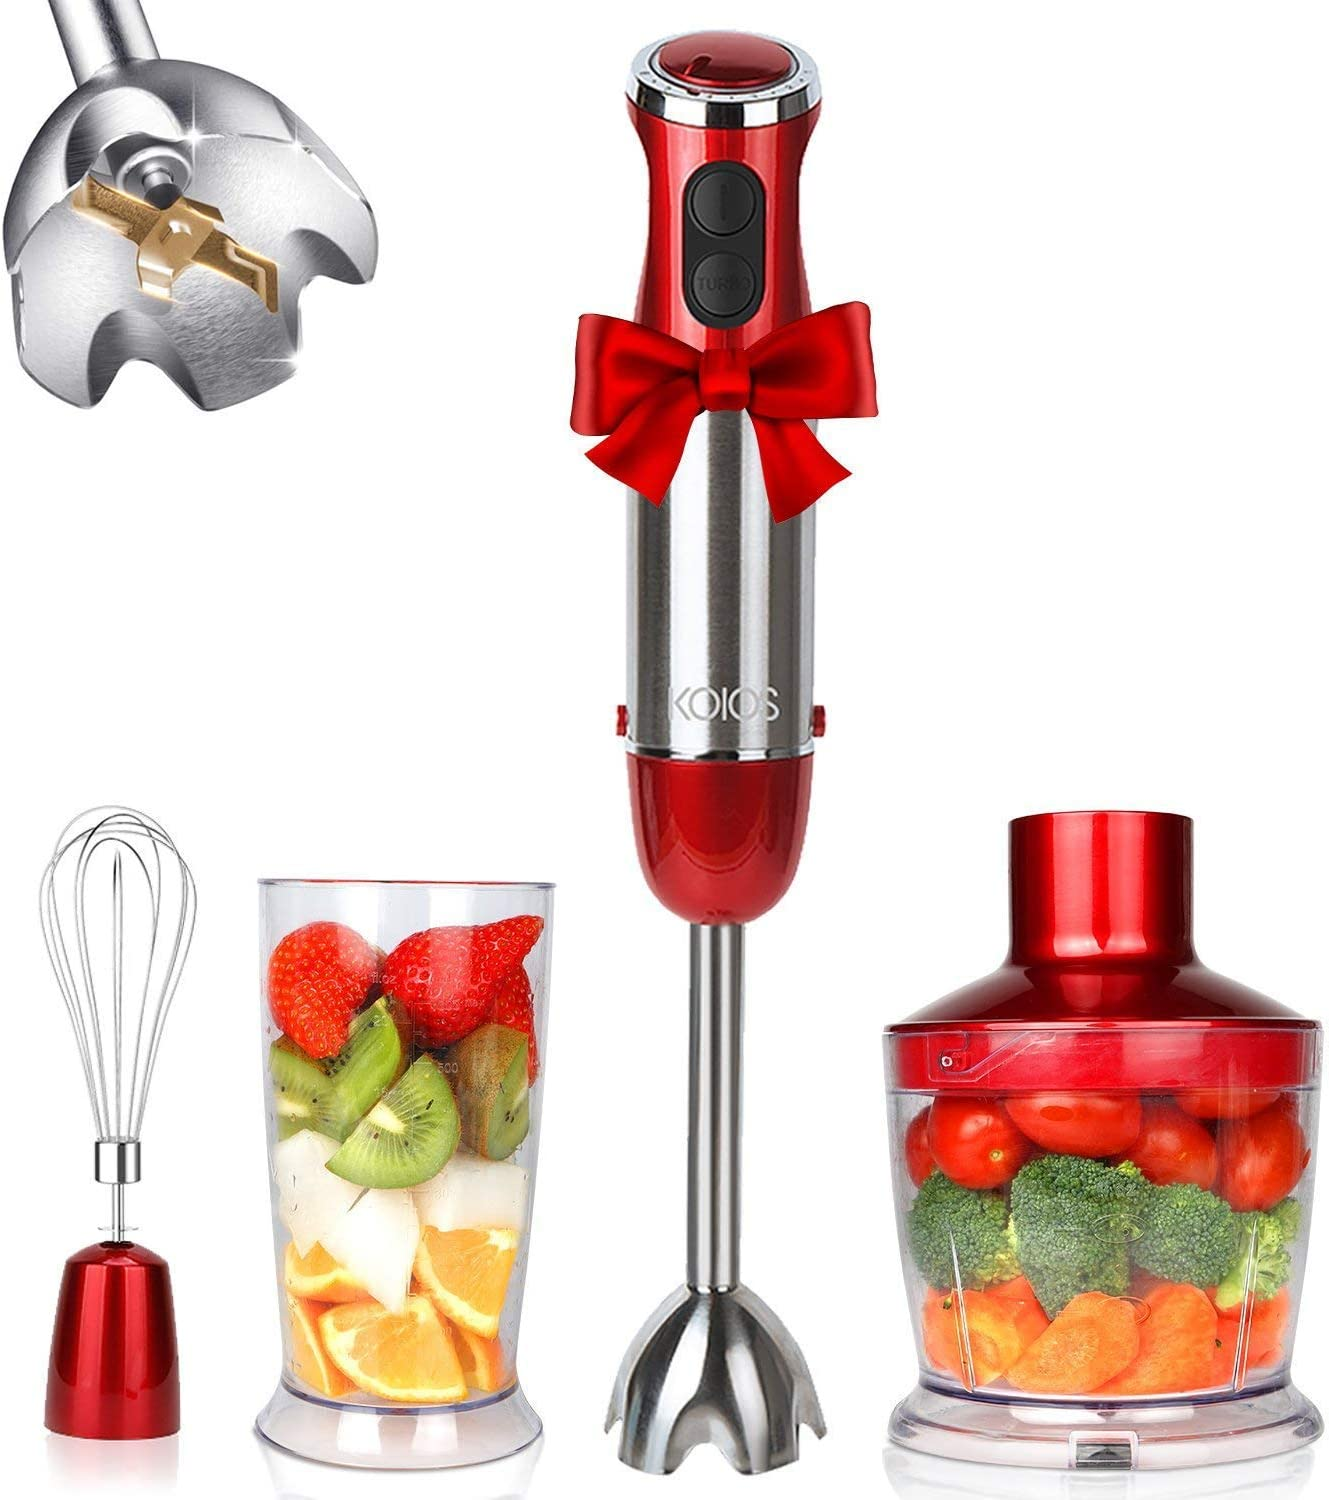 KOIOS Powerful 800W Immersion Blender 12-Speed Multi-Purpose 4-in-1 Hand Blender Includes Stick Blender, 500ml Food Processor, 600ml Mixing Beaker and Whisk, BPA-Free, Red (Renewed)